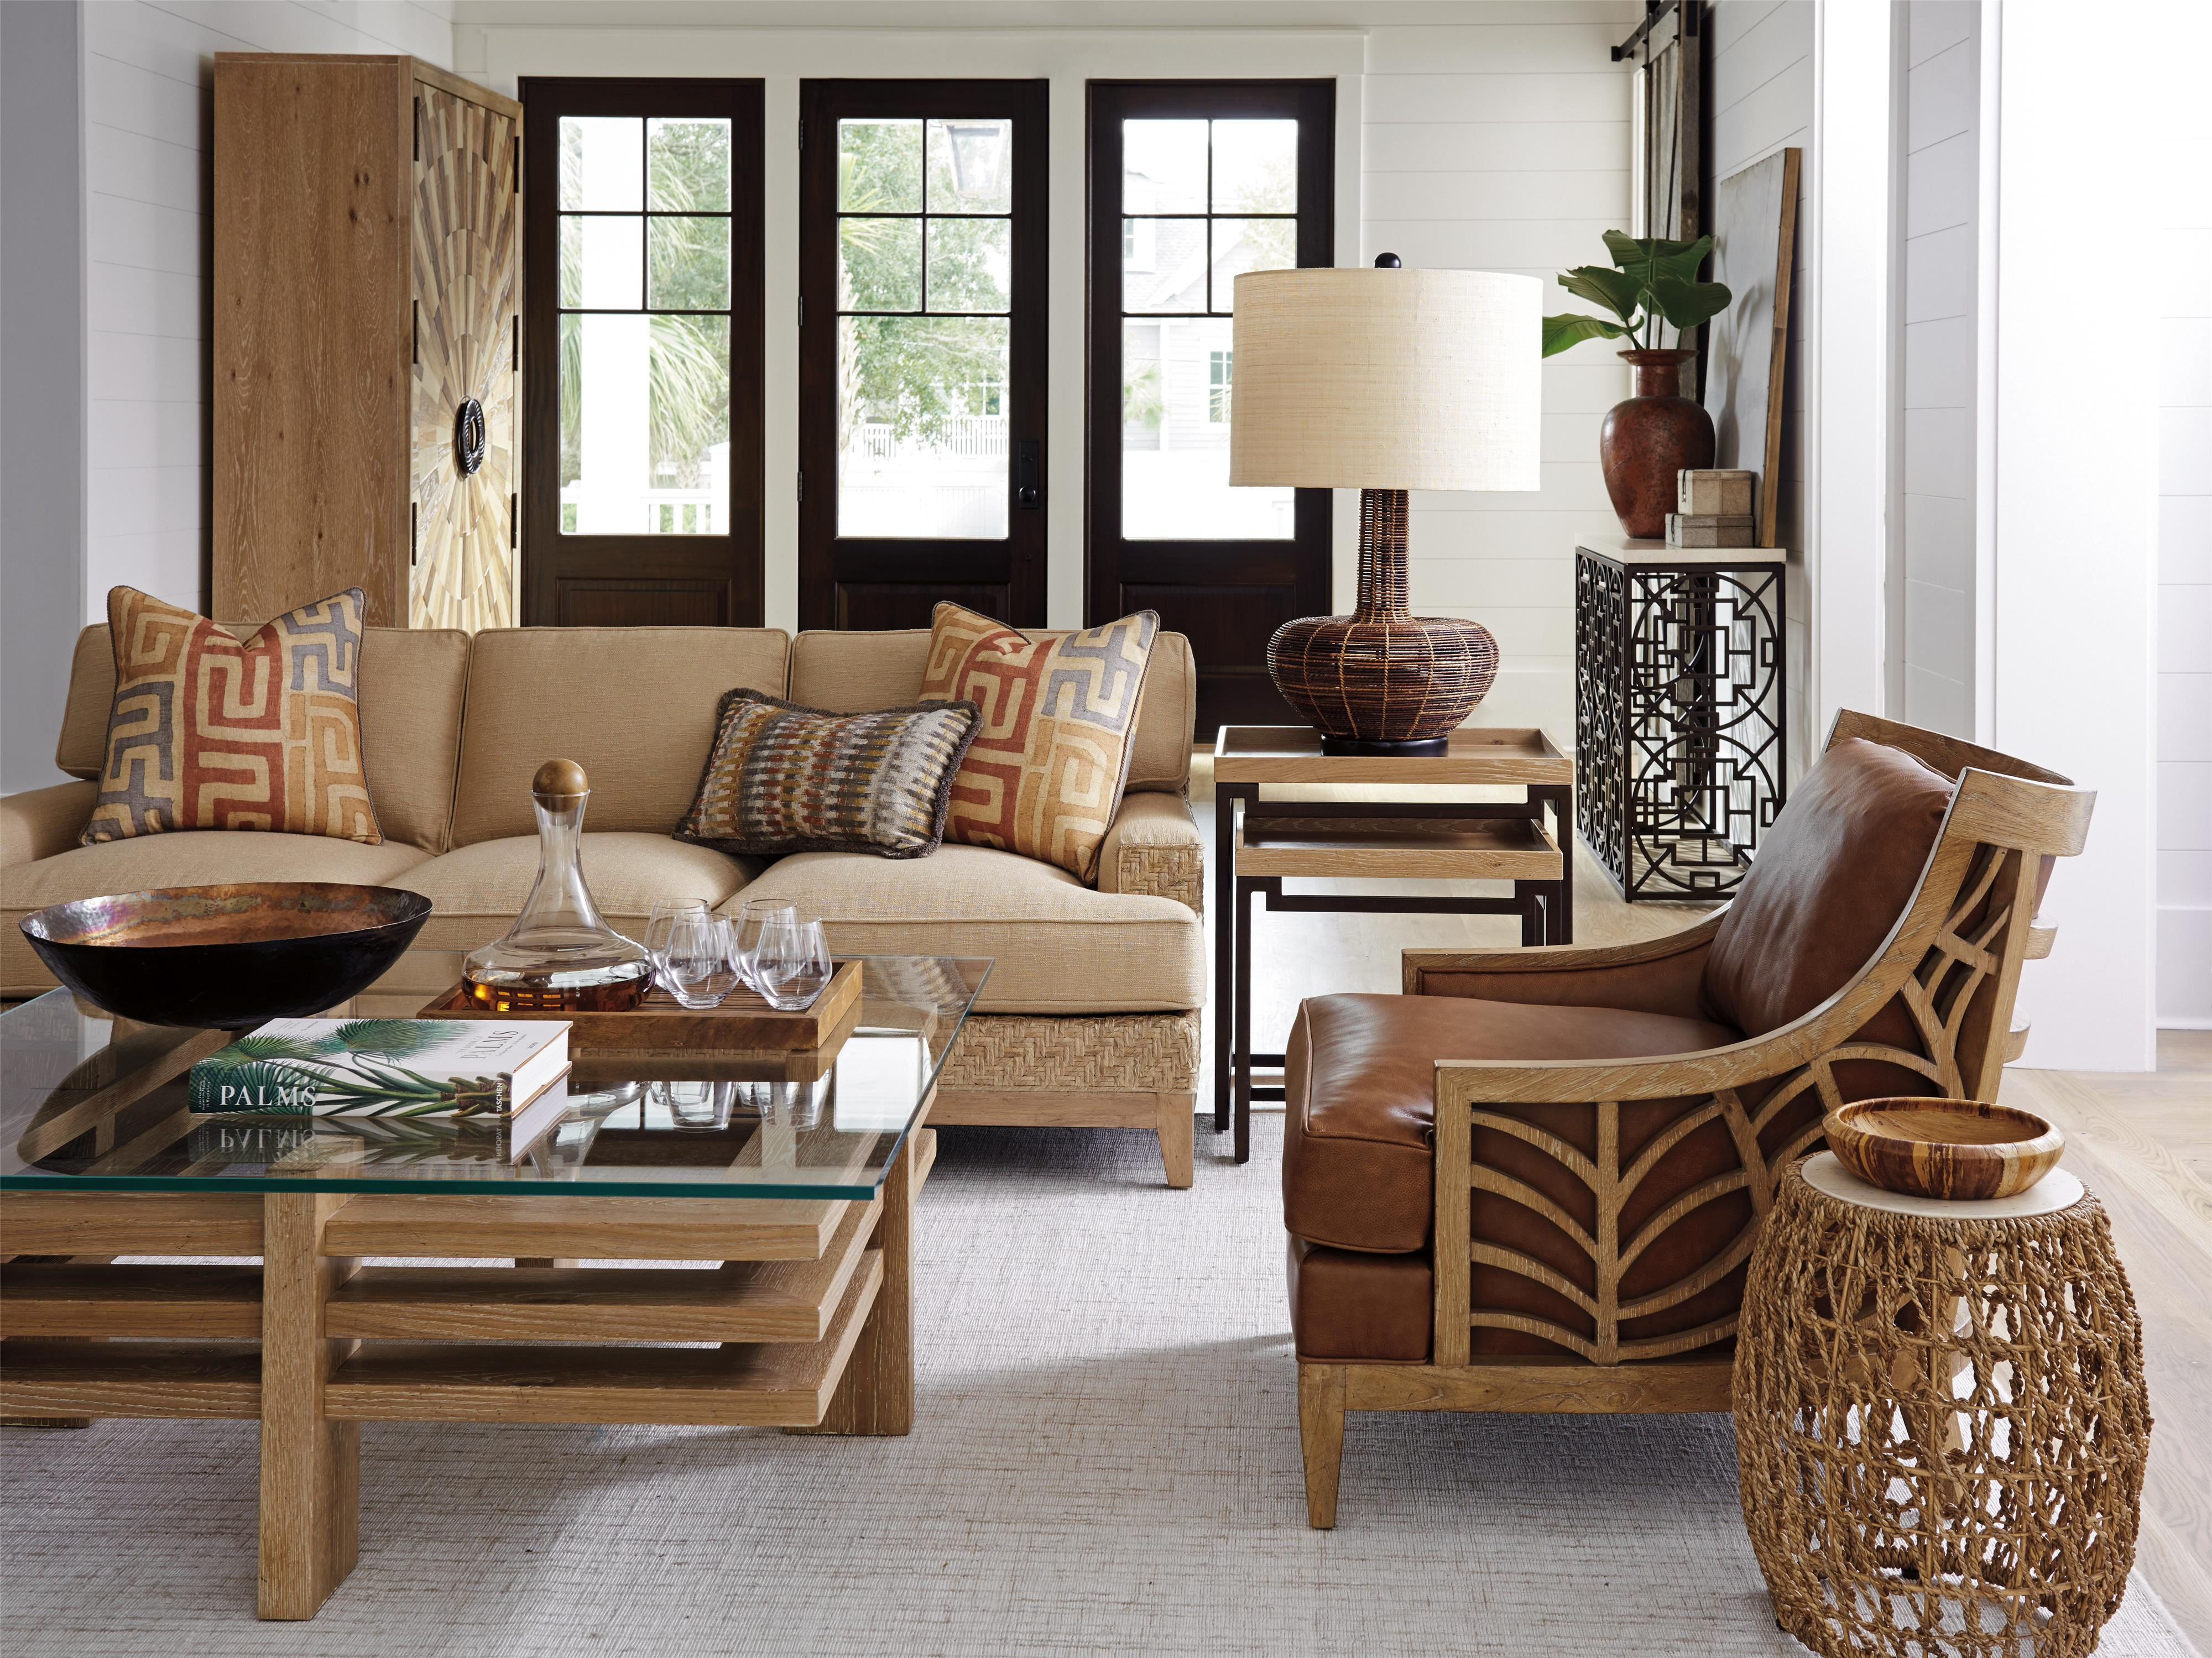 Round Table Los Altos.Los Altos Leather By Tommy Bahama Home Hudson S Furniture